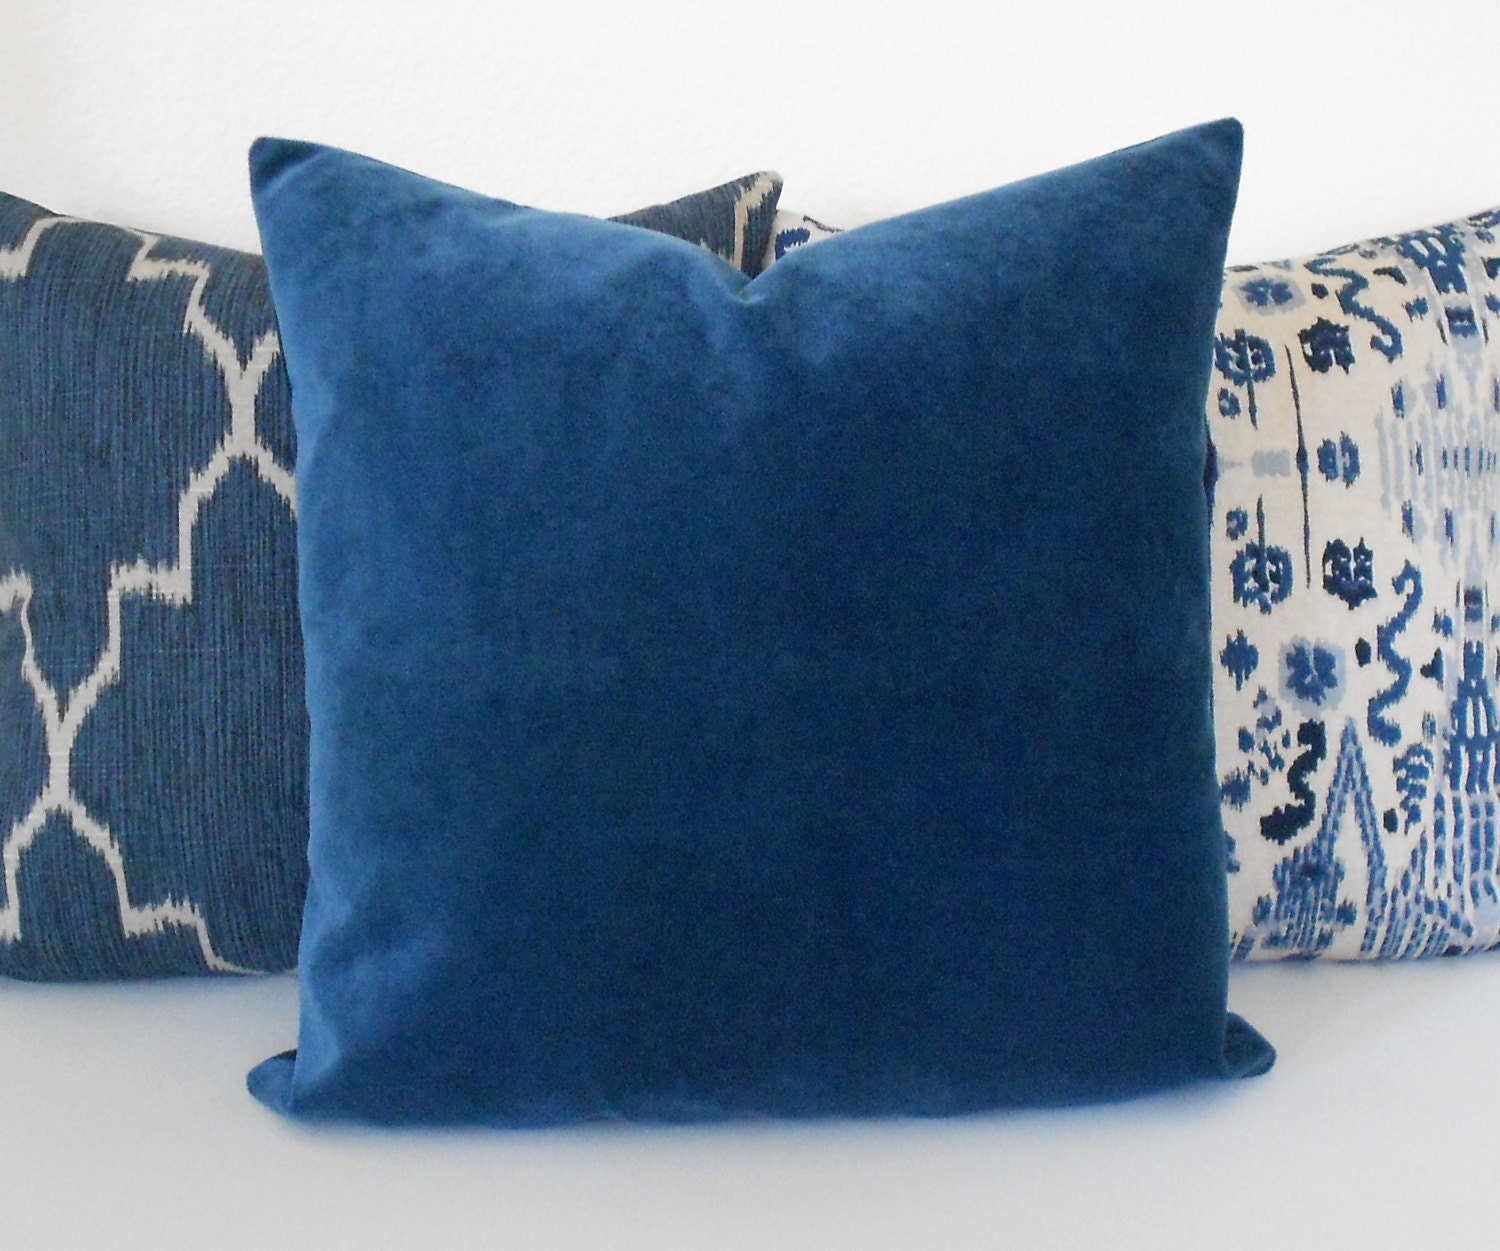 Indigo blue velvet decorative pillow cover accent pillow for Decor pillows